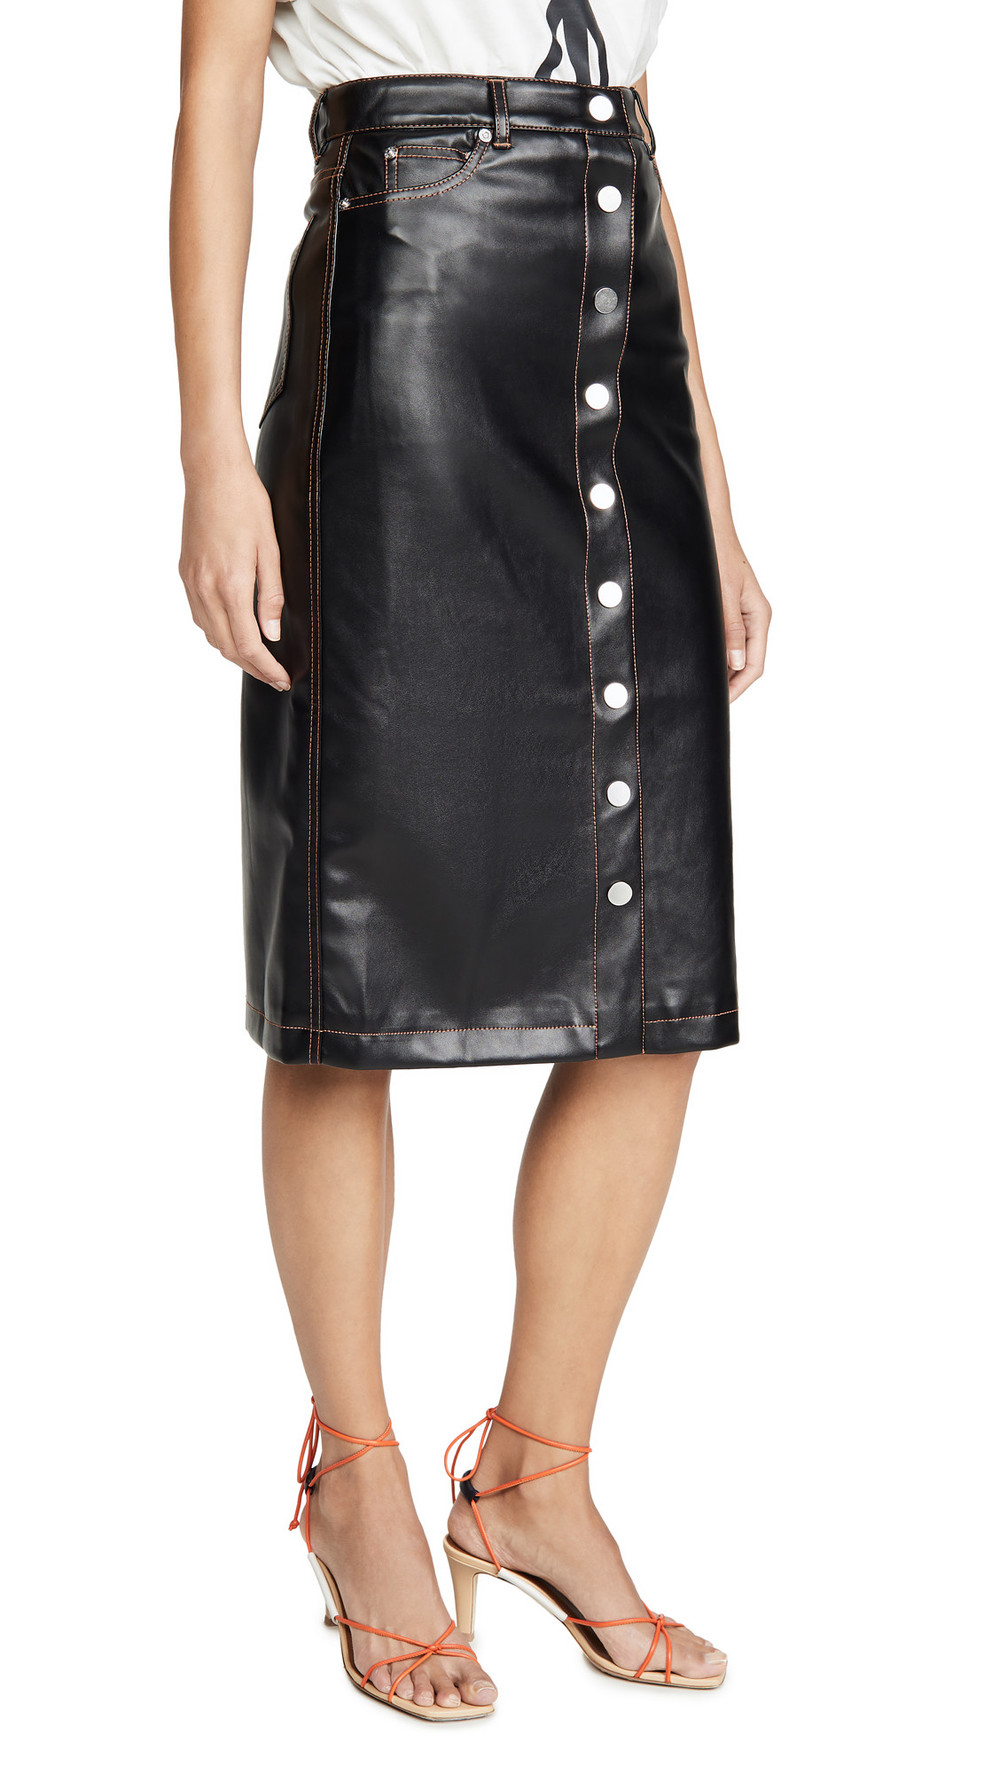 Proenza Schouler PSWL Faux Leather Button Front Midi Skirt in black